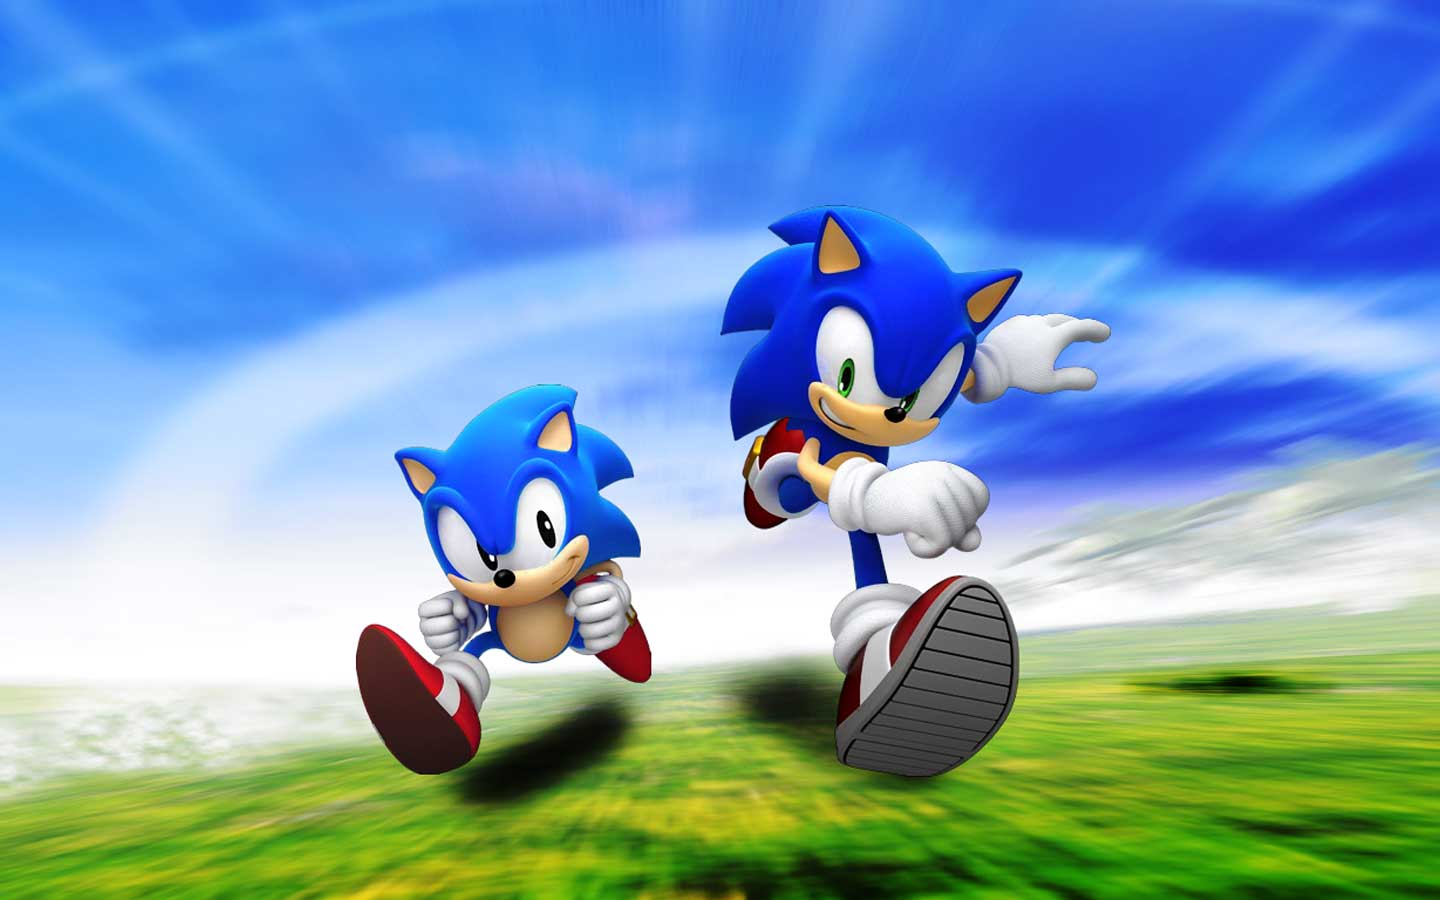 HD Sonic Wallpaper 1080p - WallpaperSafari